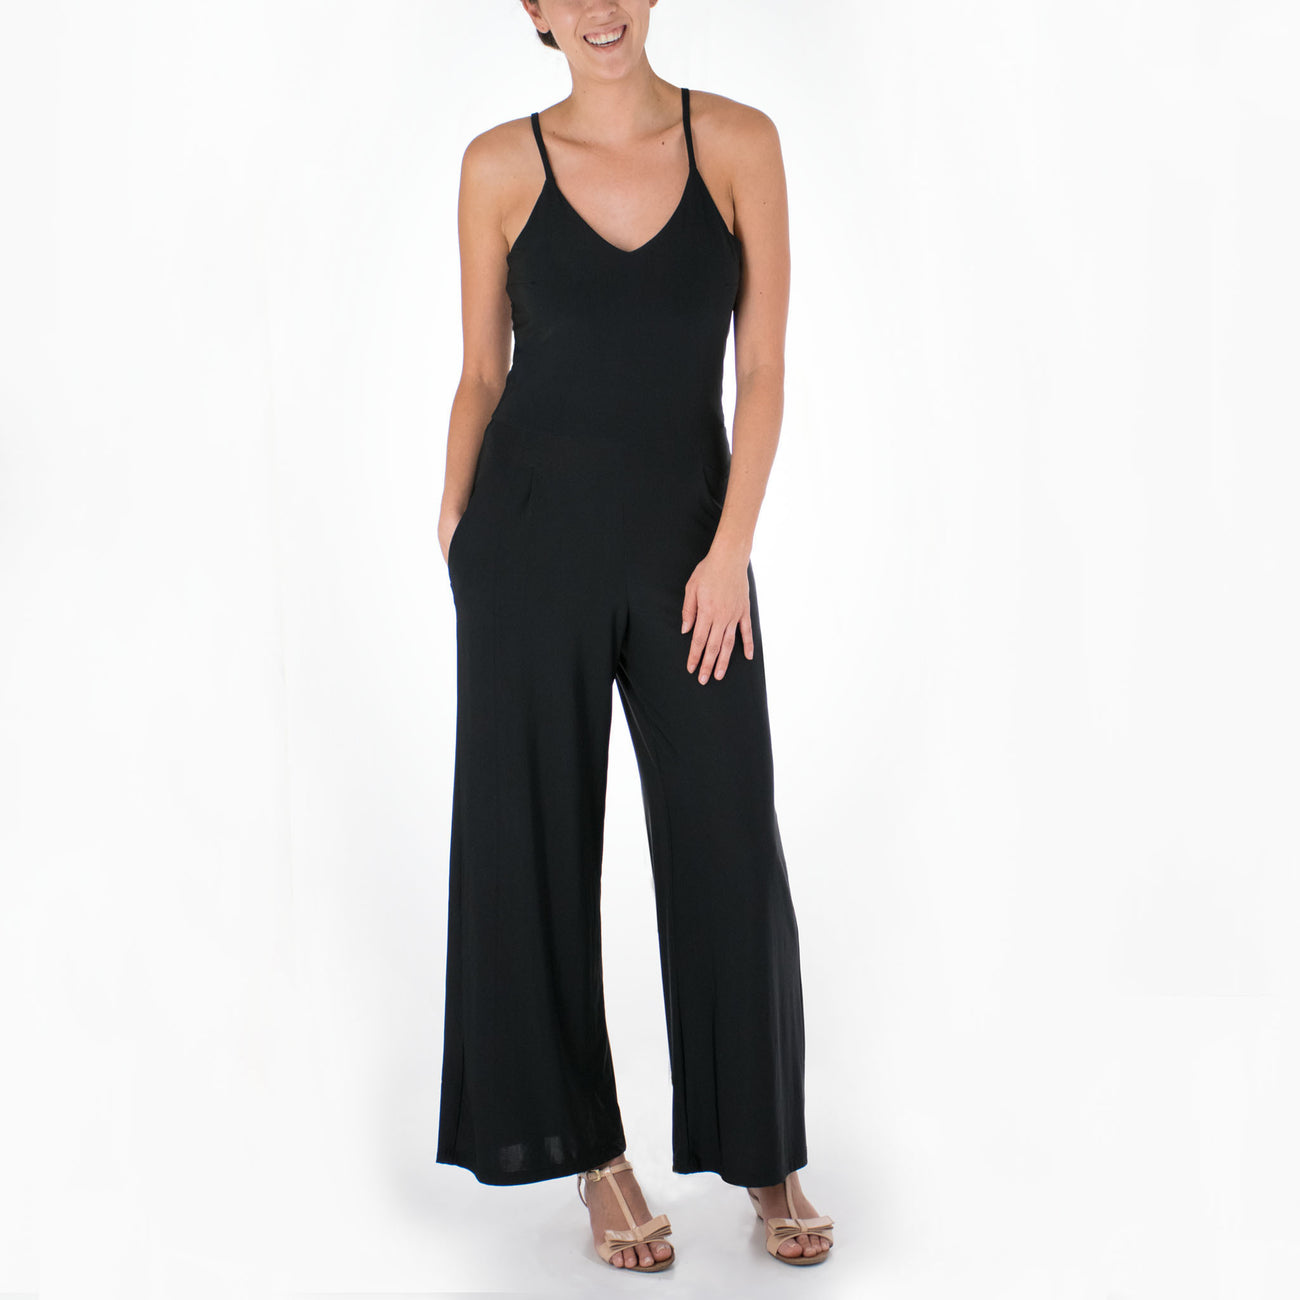 SOLID STRAPPY KNIT JUMPSUIT